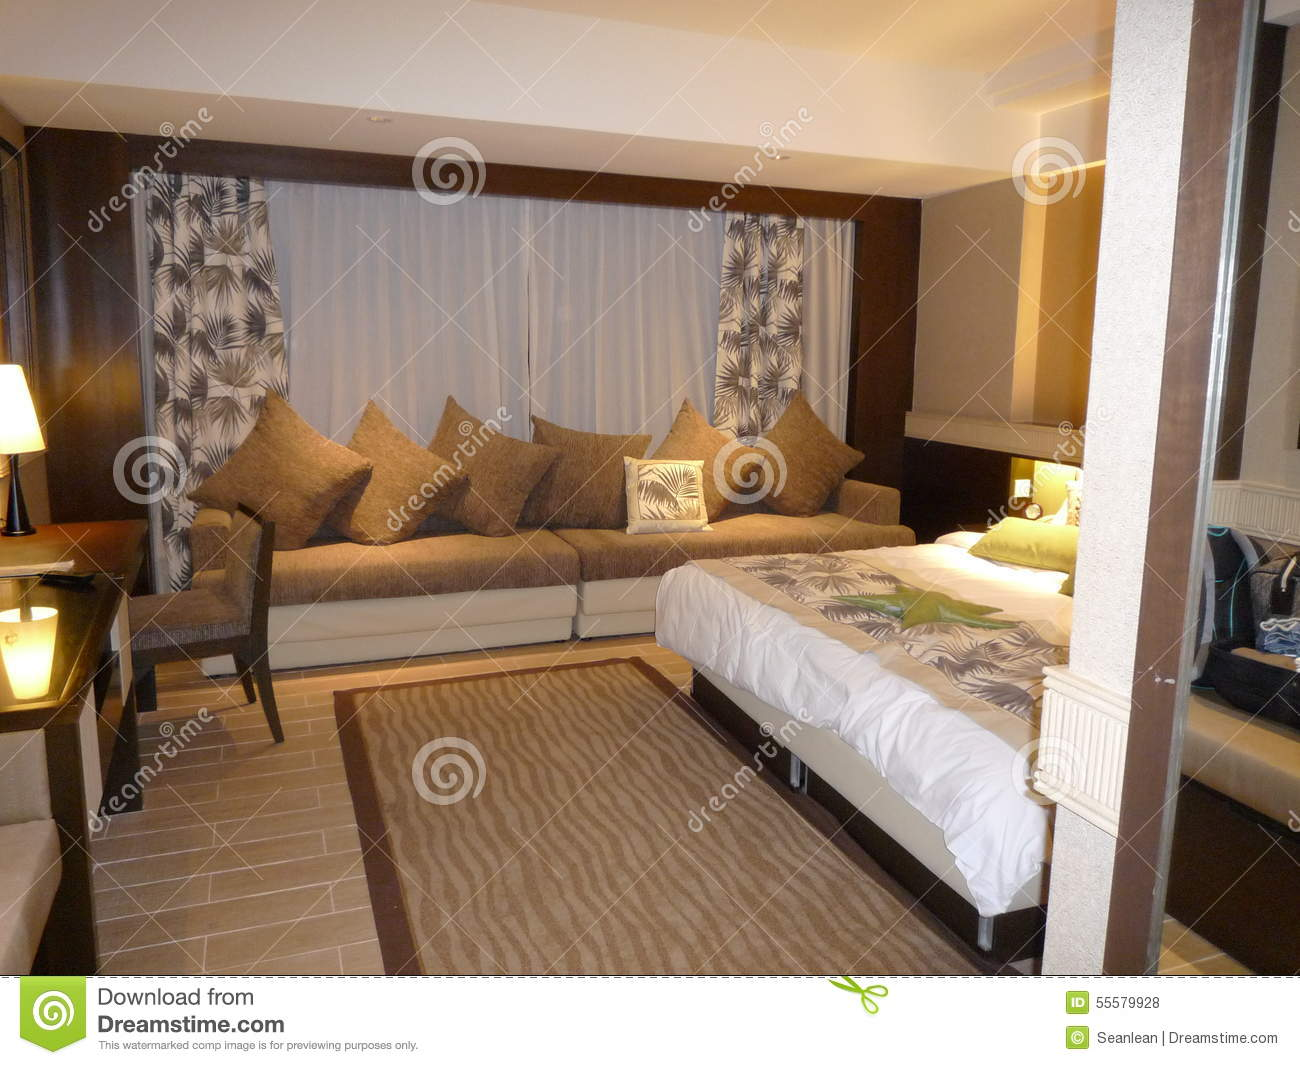 chambre coucher de luxe d 39 h tel photo stock image 55579928. Black Bedroom Furniture Sets. Home Design Ideas